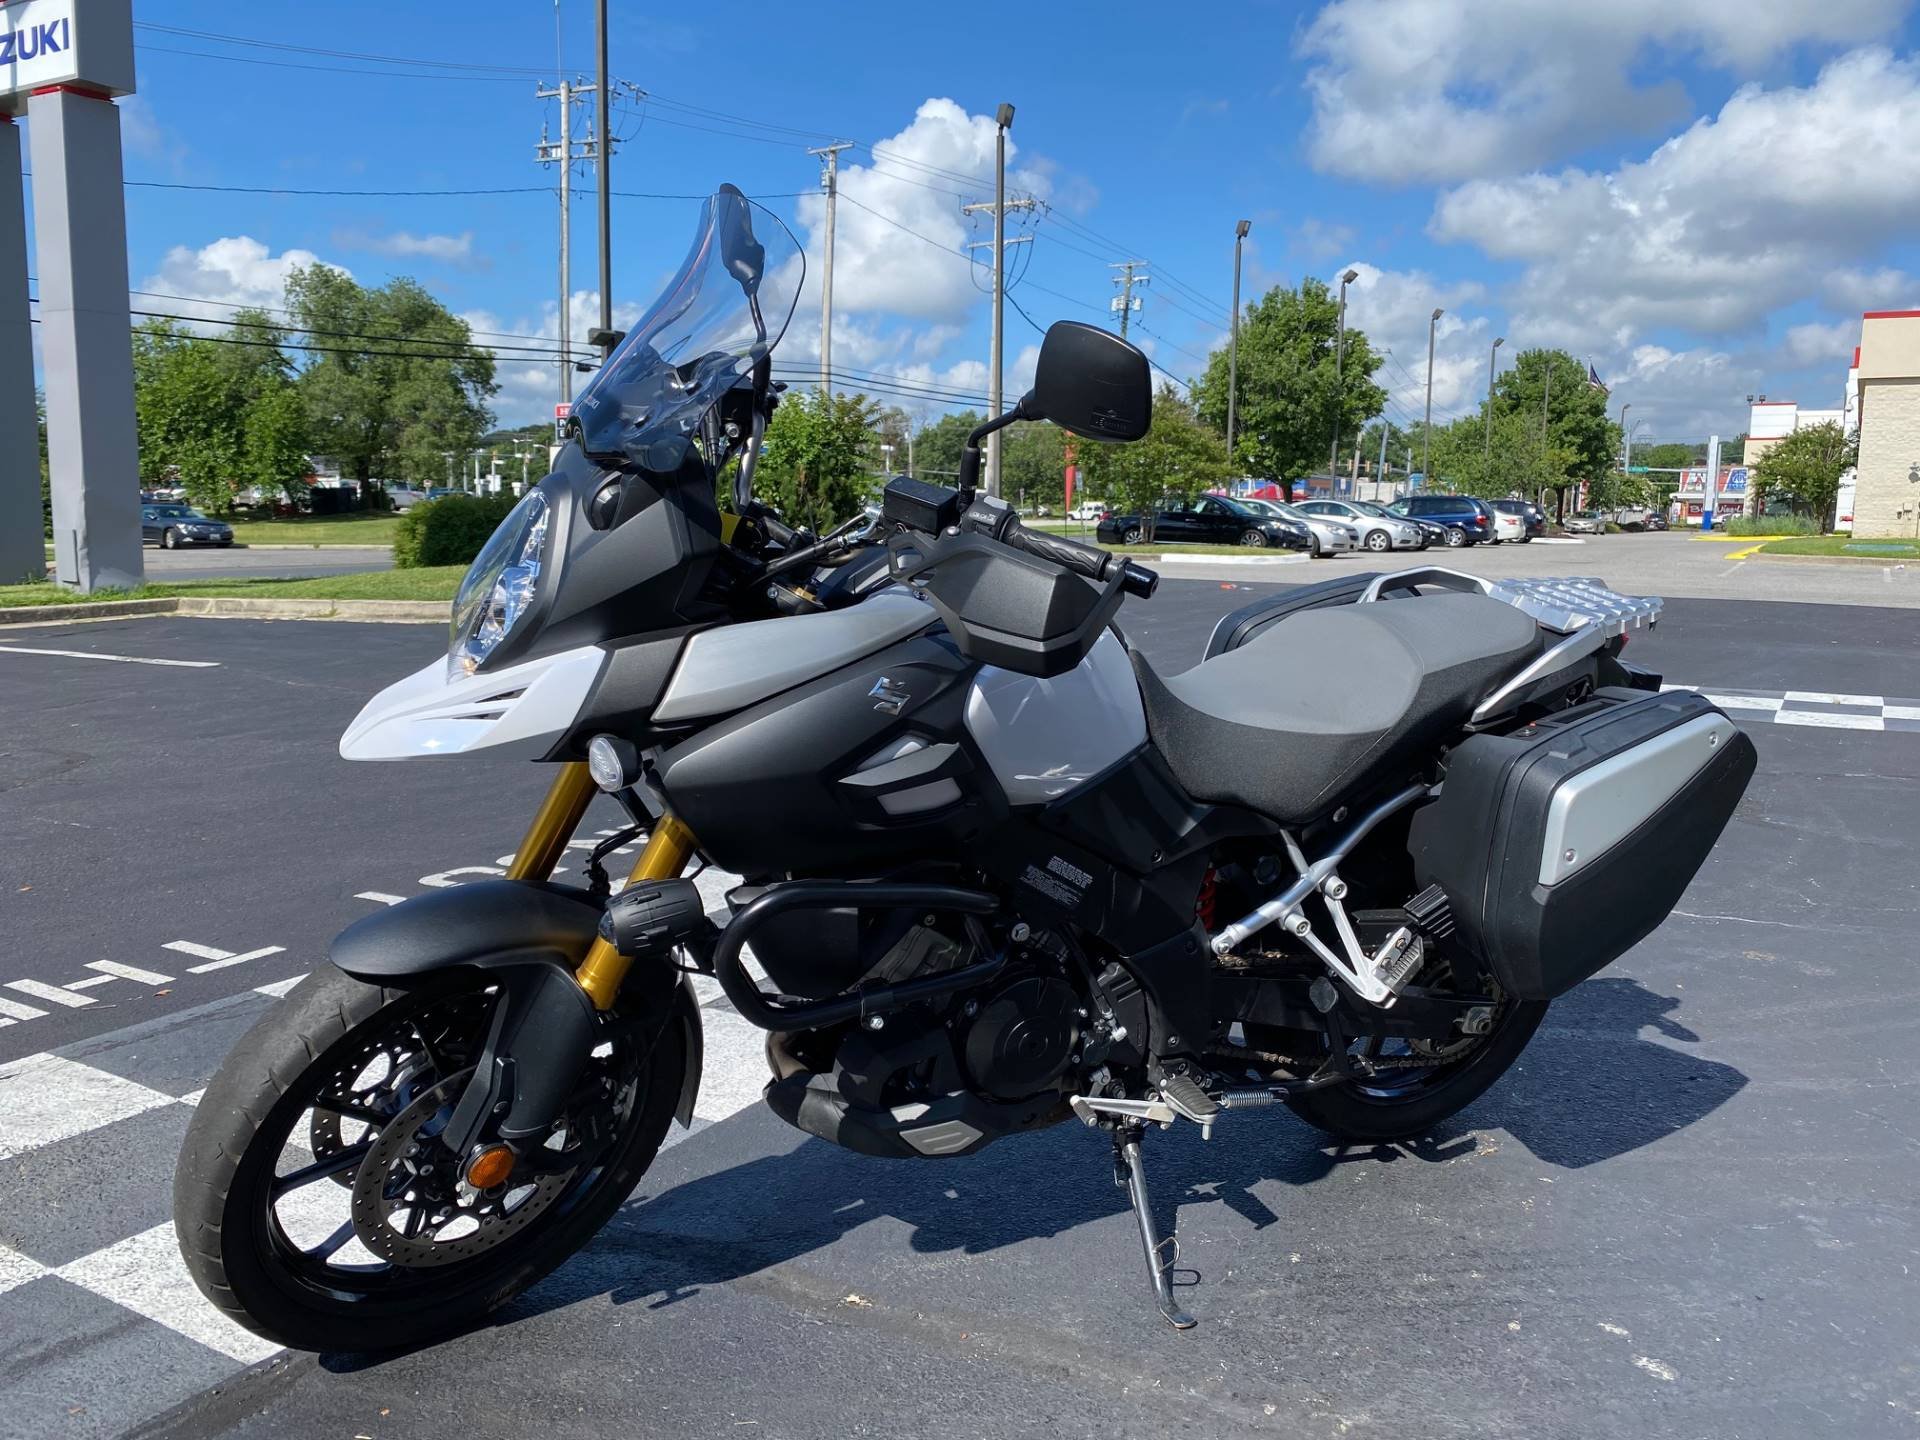 2015 Suzuki V-Strom 1000 ABS Adventure in Glen Burnie, Maryland - Photo 4